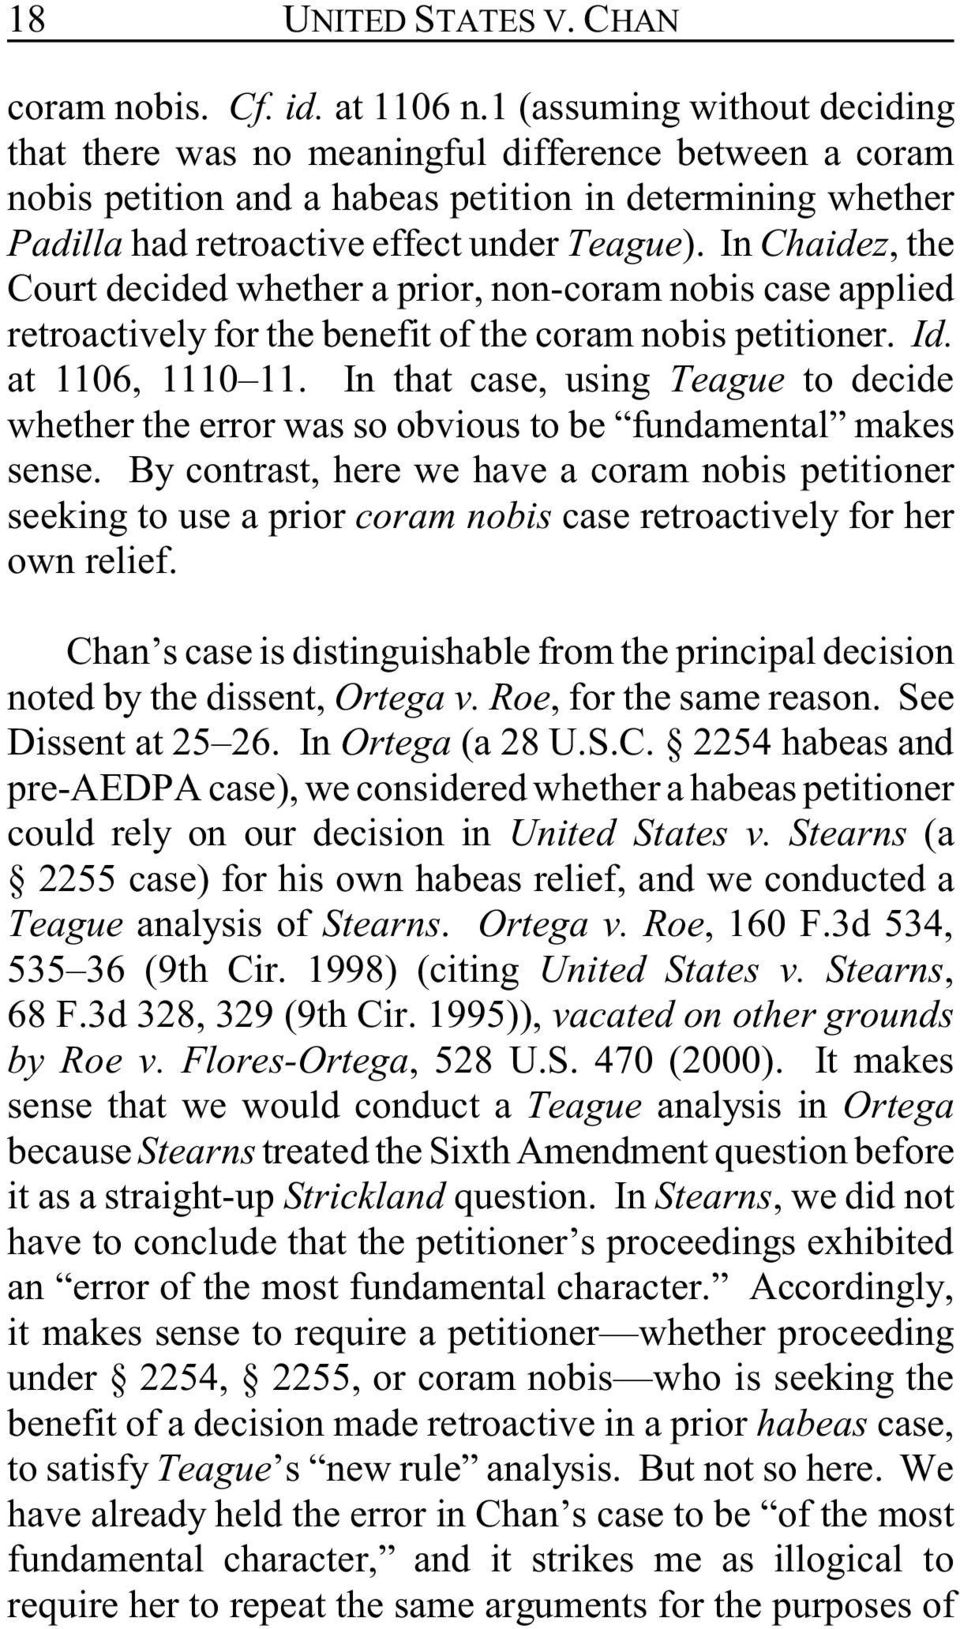 In Chaidez, the Court decided whether a prior, non-coram nobis case applied retroactively for the benefit of the coram nobis petitioner. Id. at 1106, 1110 11.